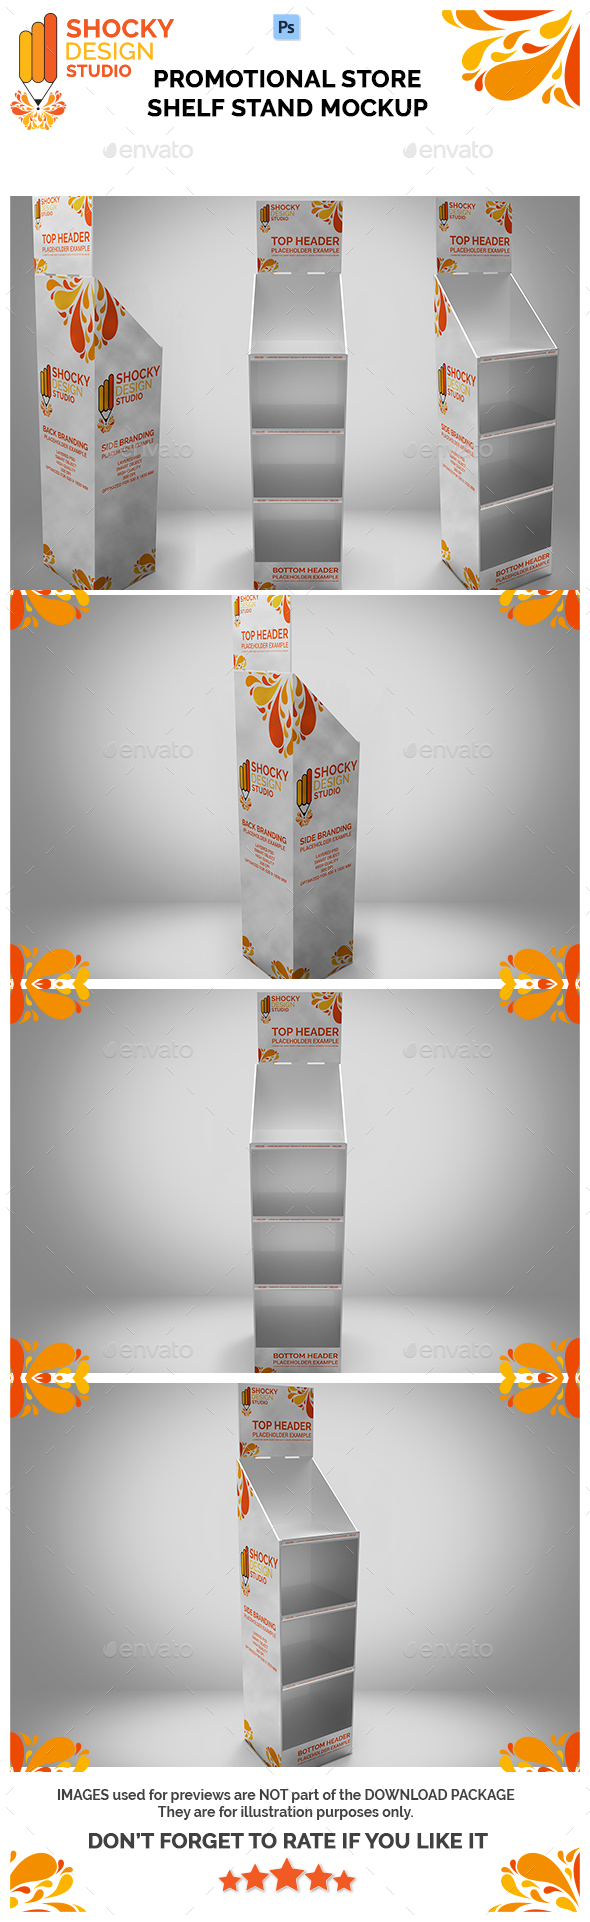 Promotional Store Shelf Stand Mockup - Miscellaneous Displays